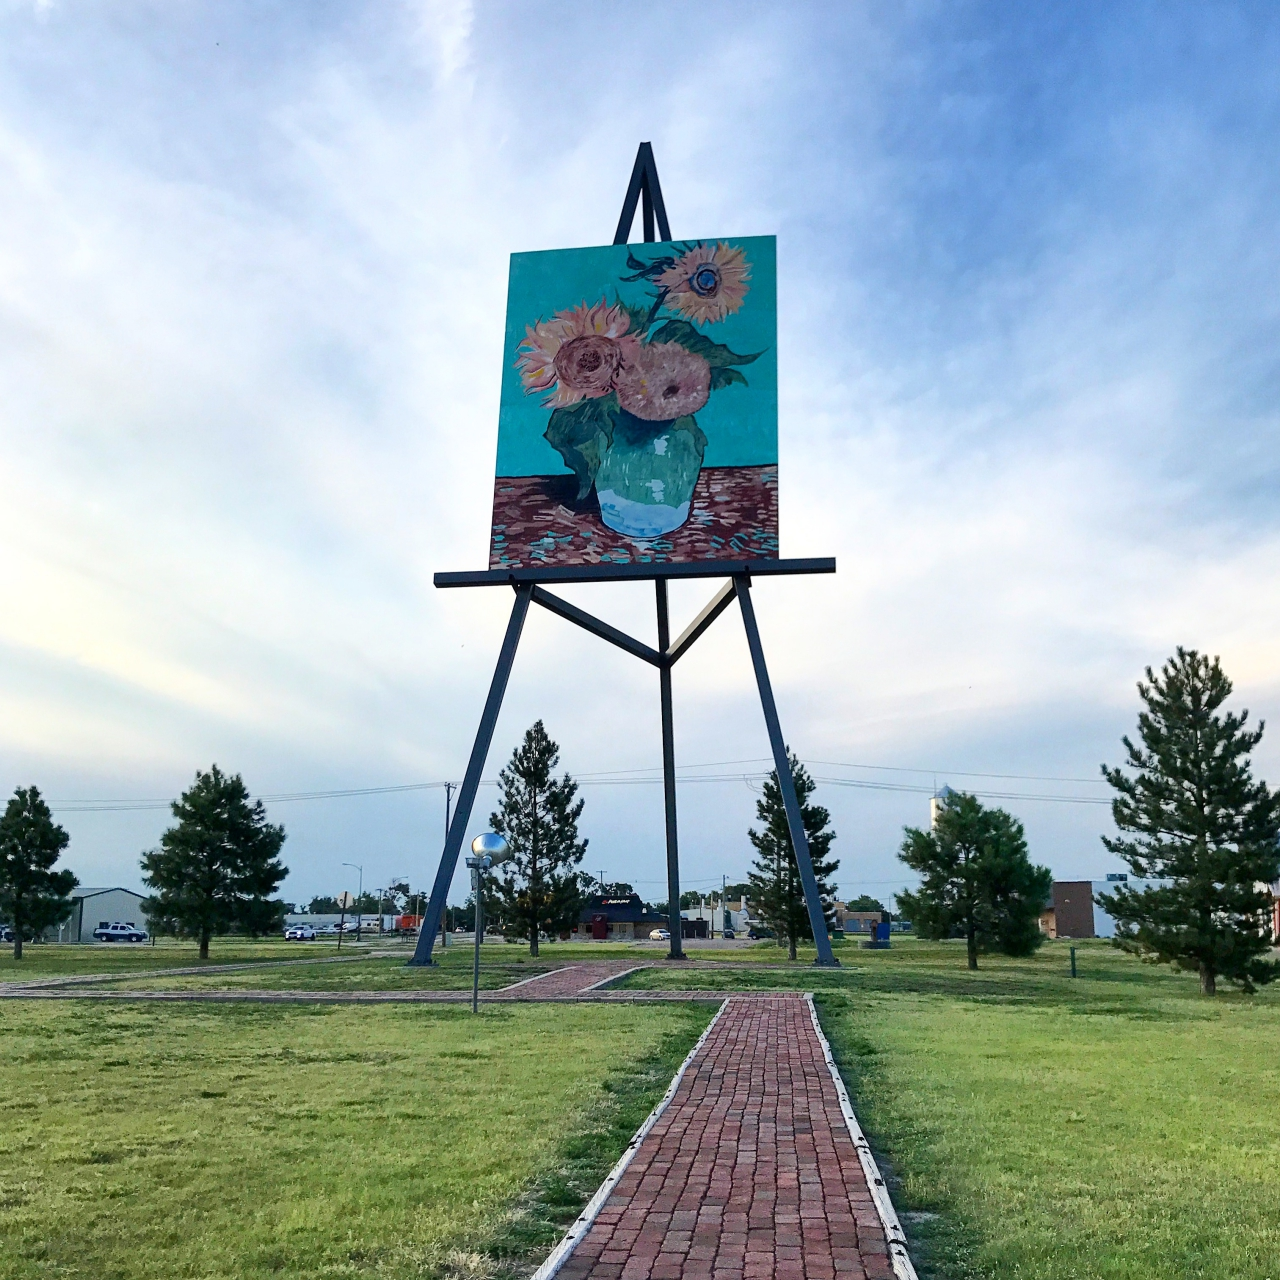 World's Tallest Easel in Goodland, Kansas, with Van Gogh's Sunflowers painted on it